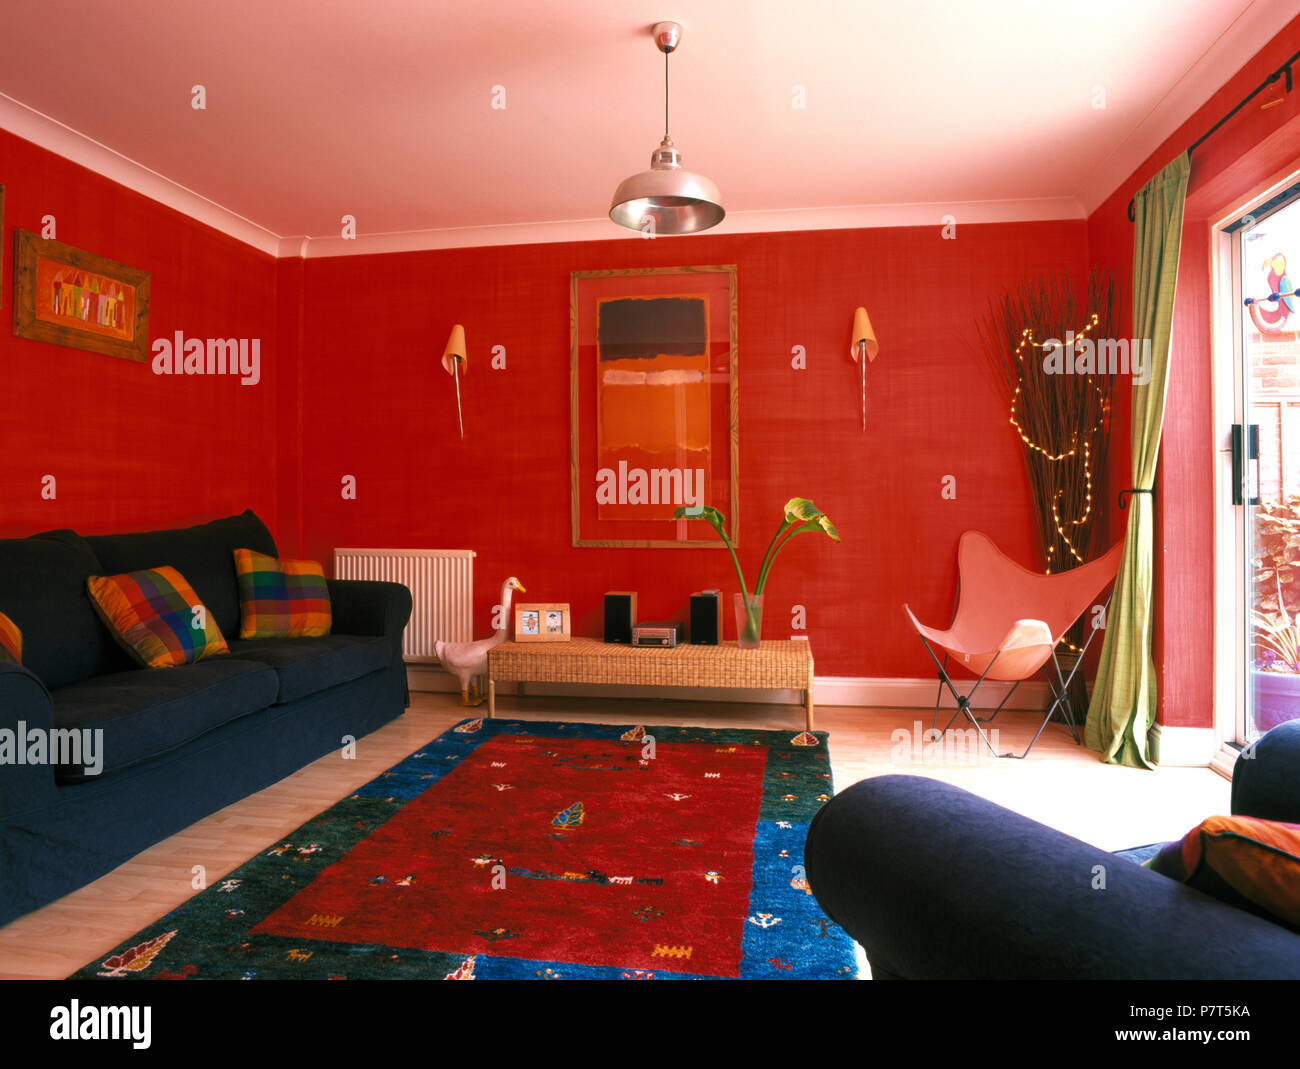 Awe Inspiring Red Blue Rug And Blue Sofa In Bright Red Nineties Living Interior Design Ideas Oxytryabchikinfo